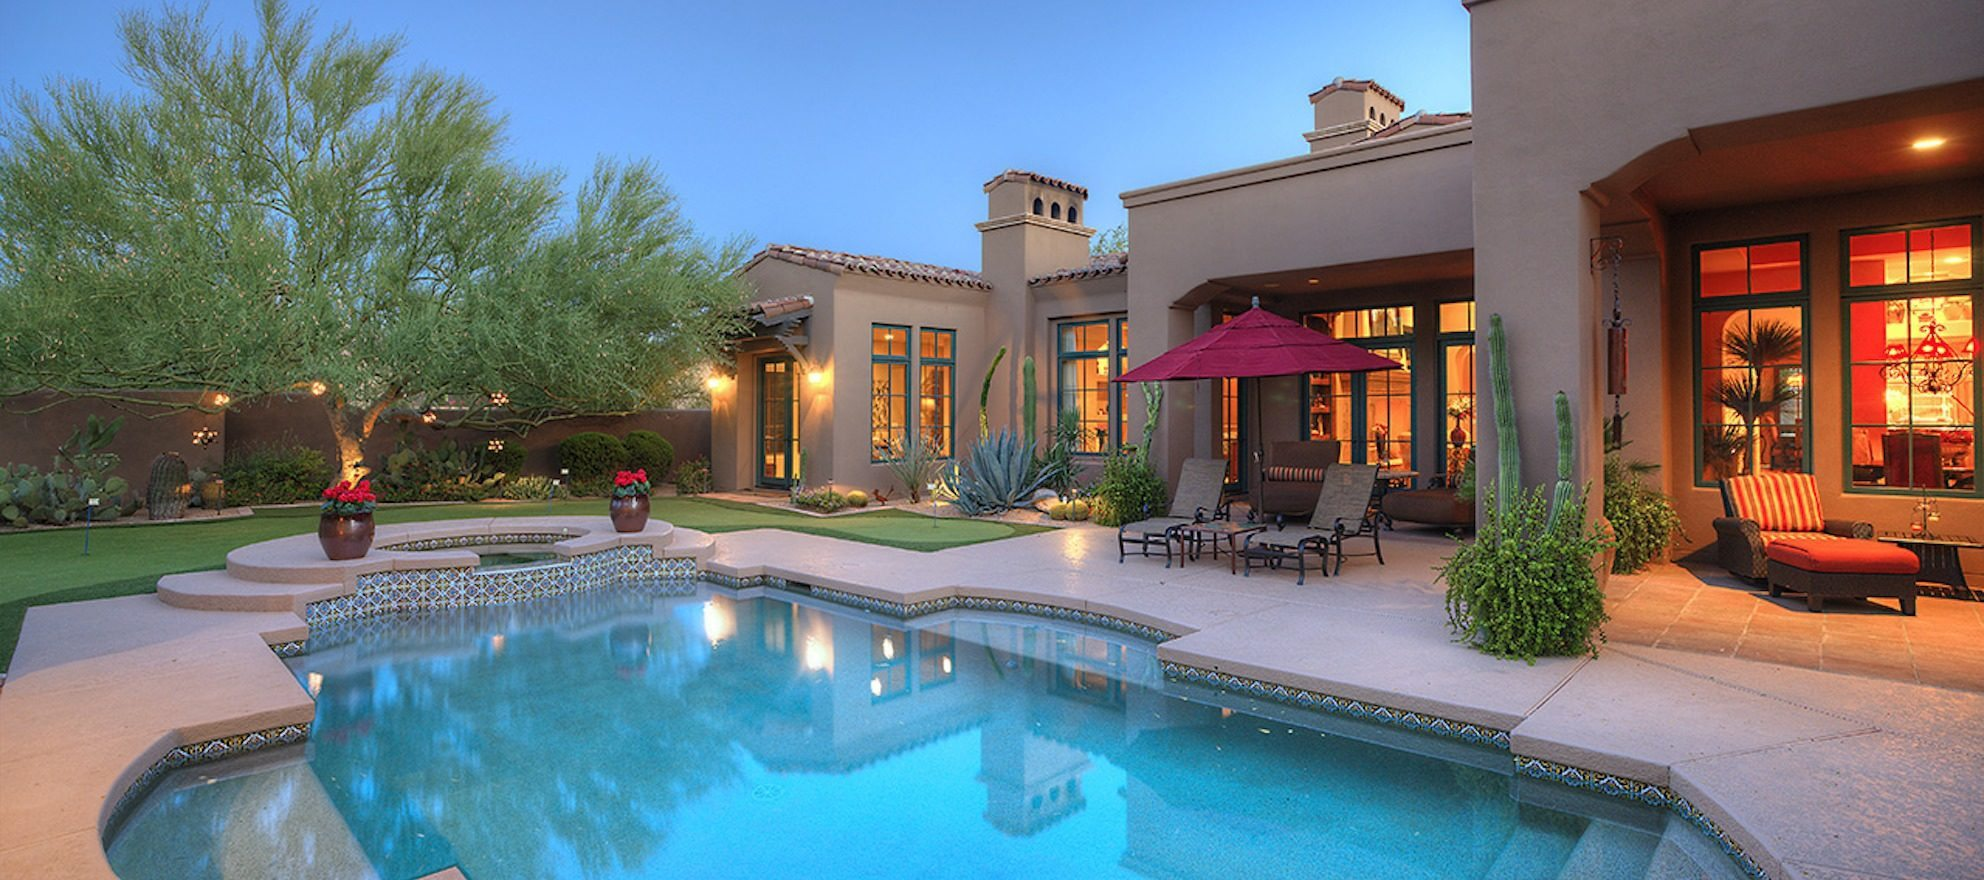 3-D home of the day: Opulent estate with local amenities